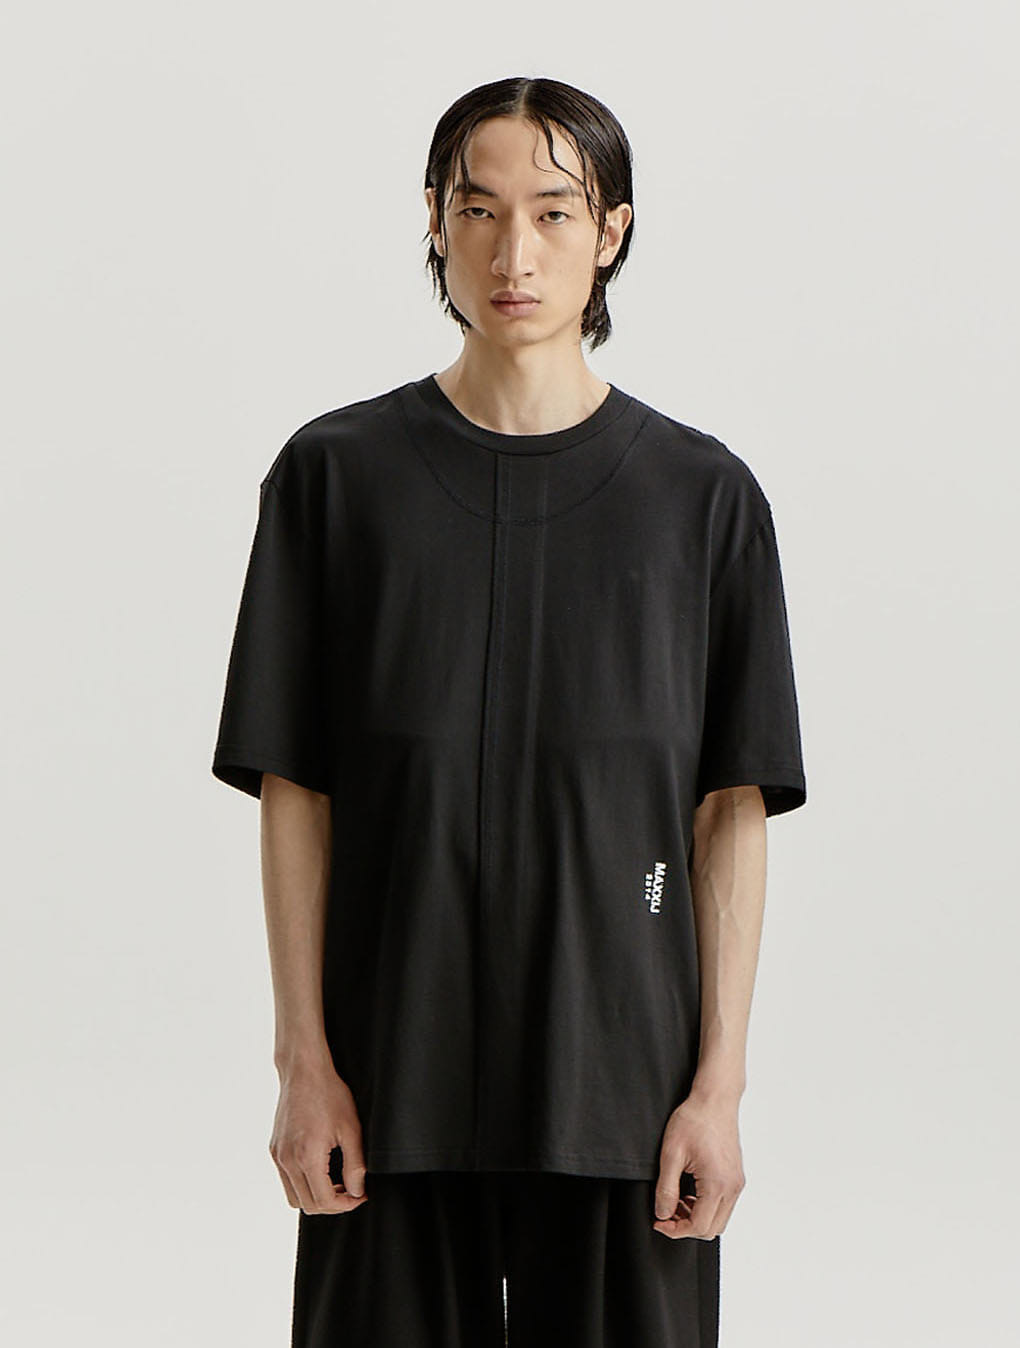 Black Signature Raw Edge Double Stitched Jersey T-shirt